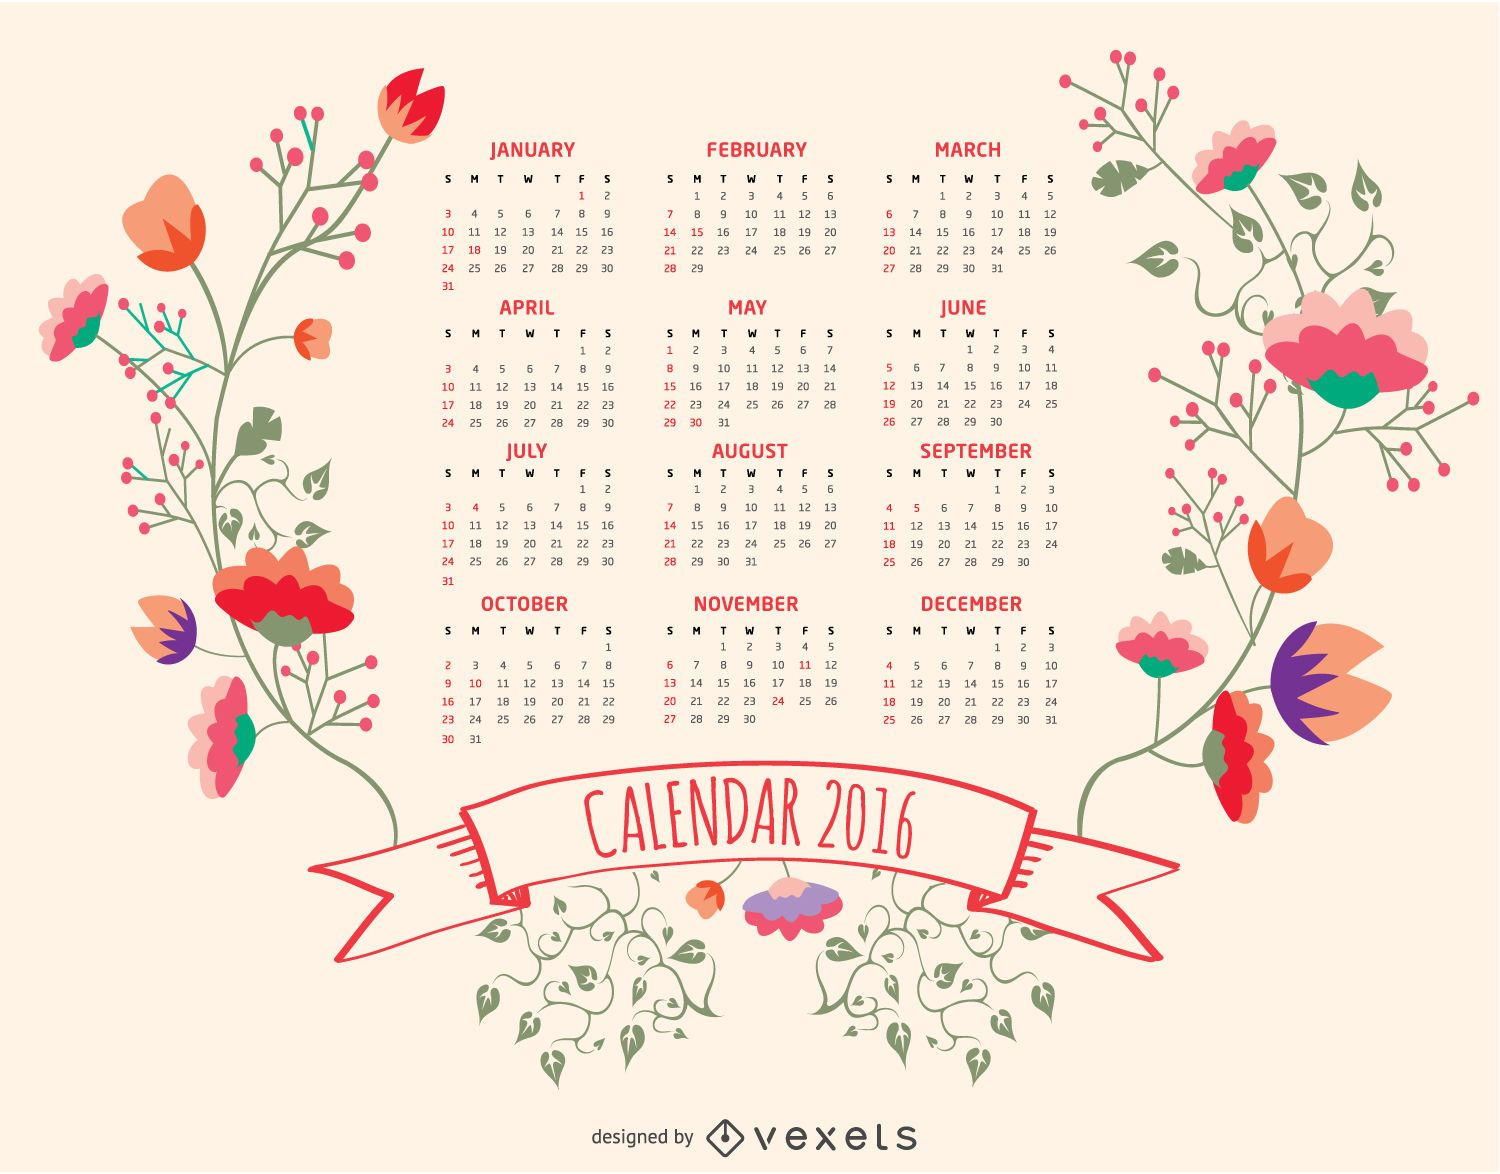 Calendar Floral : Floral calendar vector download